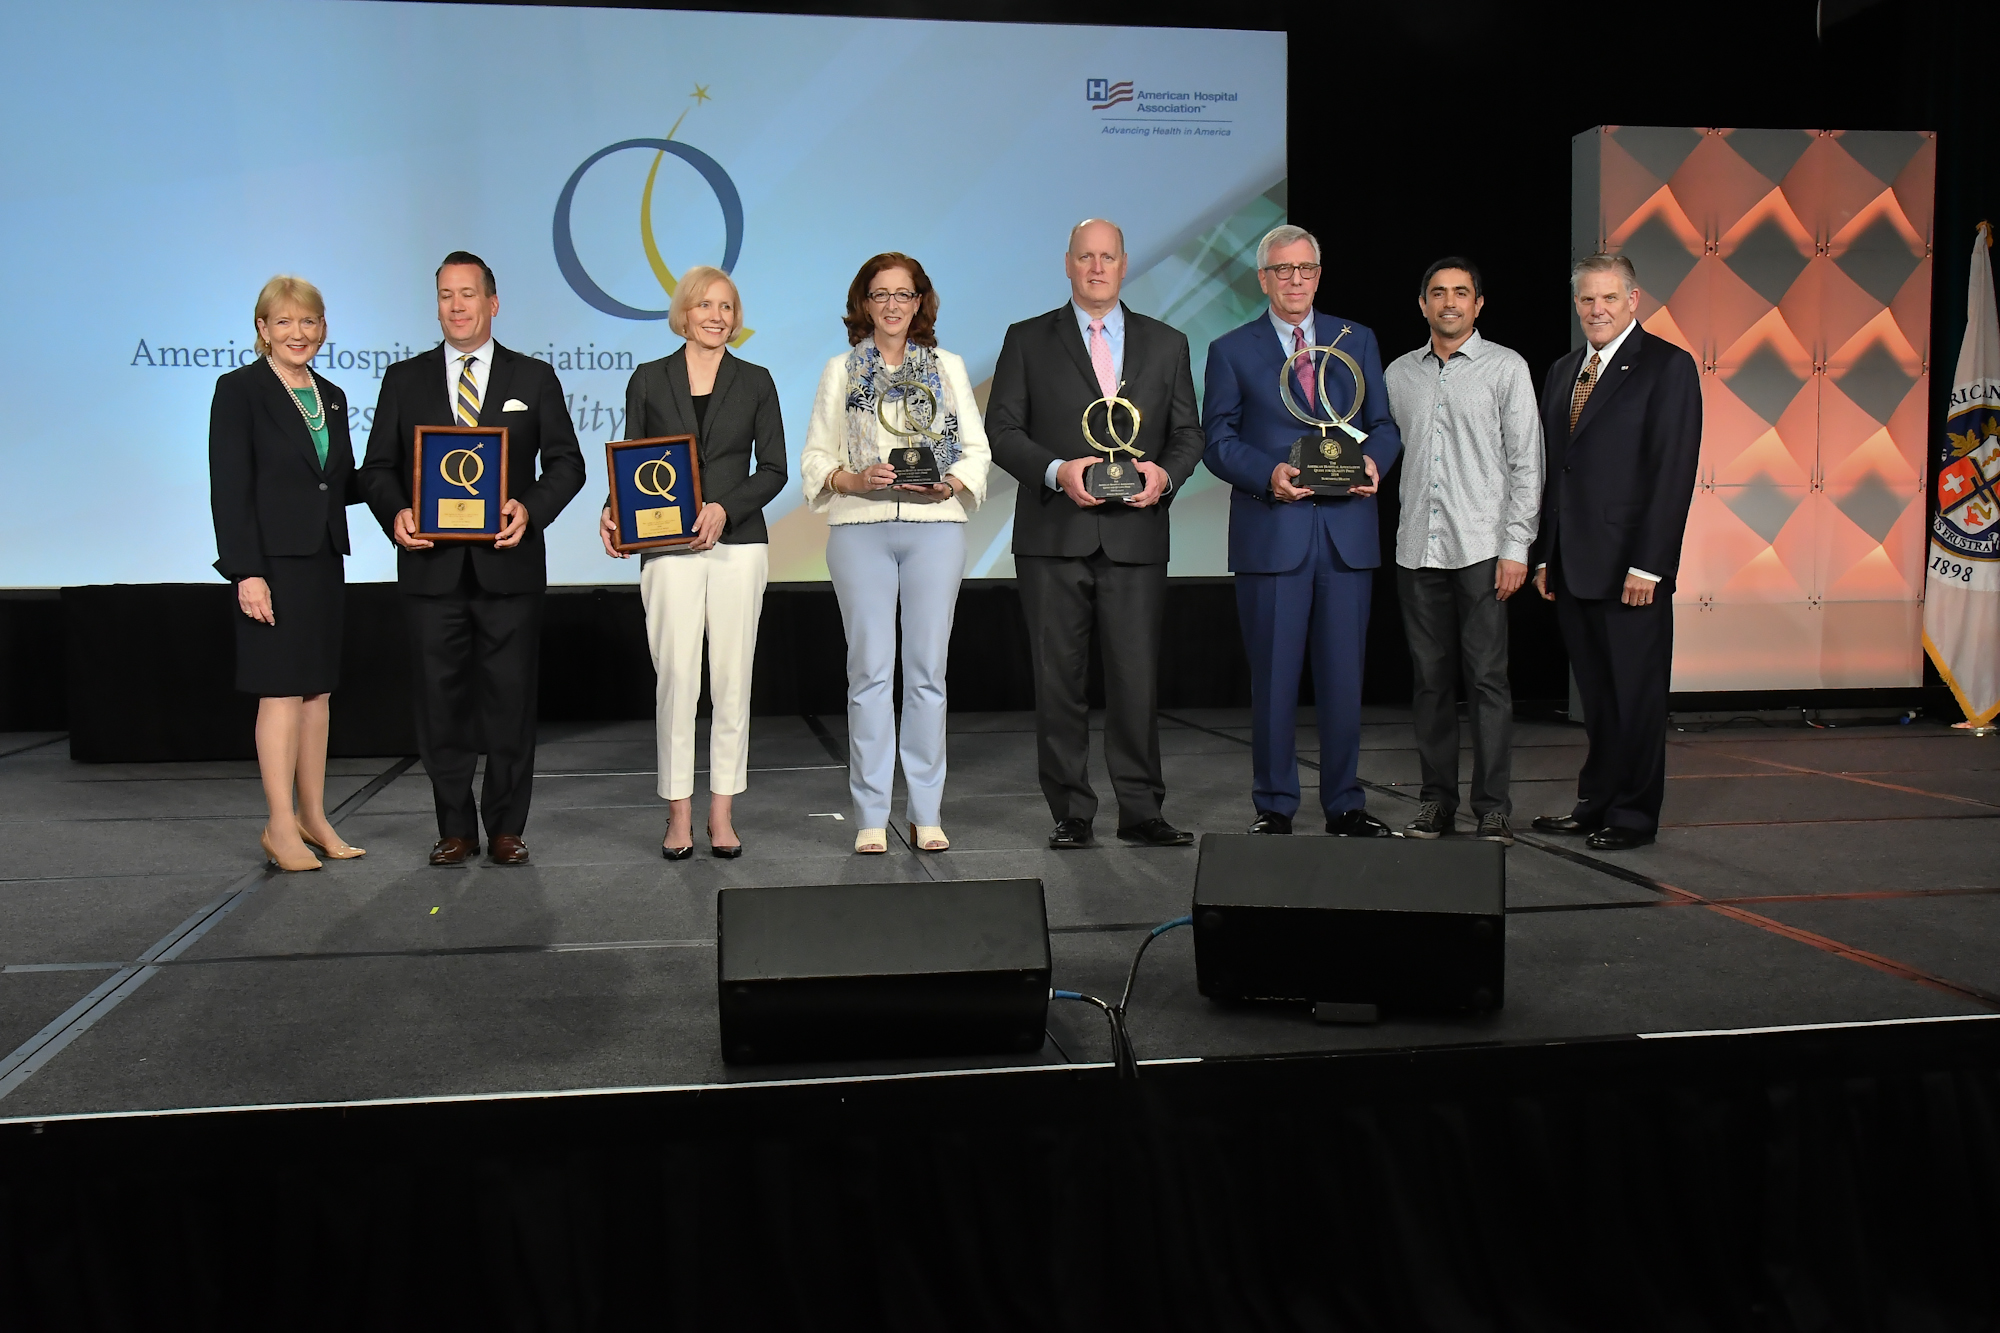 AHA Quest for Quality Award Honorees at 2018 AHA Leadership Summit